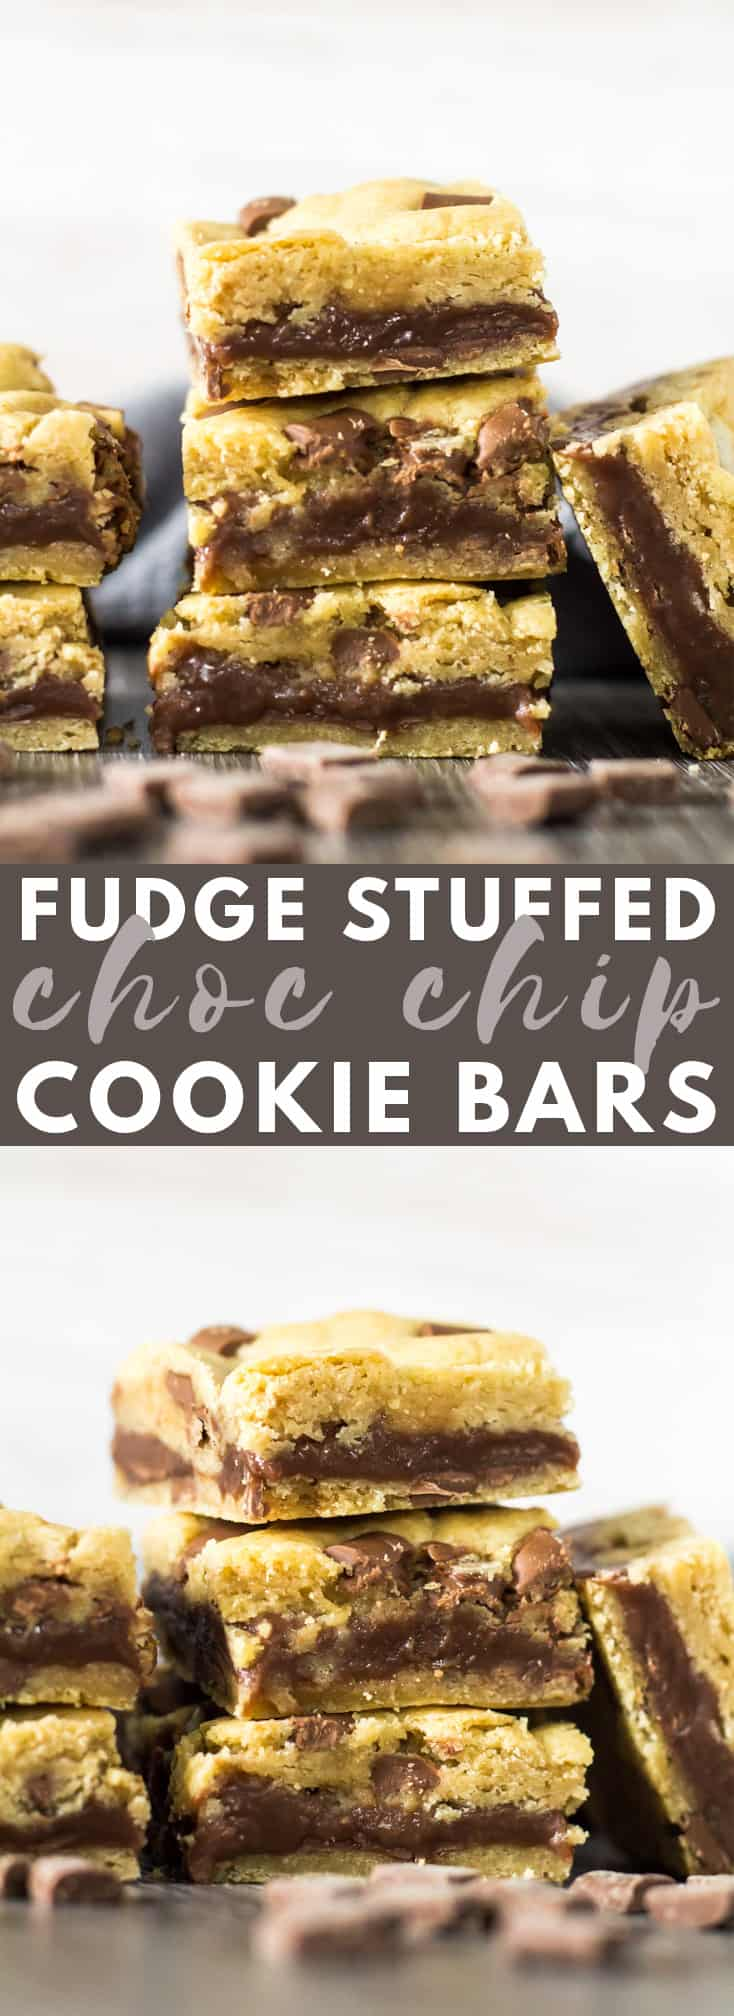 Fudge Stuffed Chocolate Chip Cookie Bars - Deliciously thick and chewy chocolate chip cookie bars stuffed with a creamy chocolate fudge centre. These bars take cookies to a whole new level! #chocolatechipcookies #chocolate #fudge #cookiebars #recipe